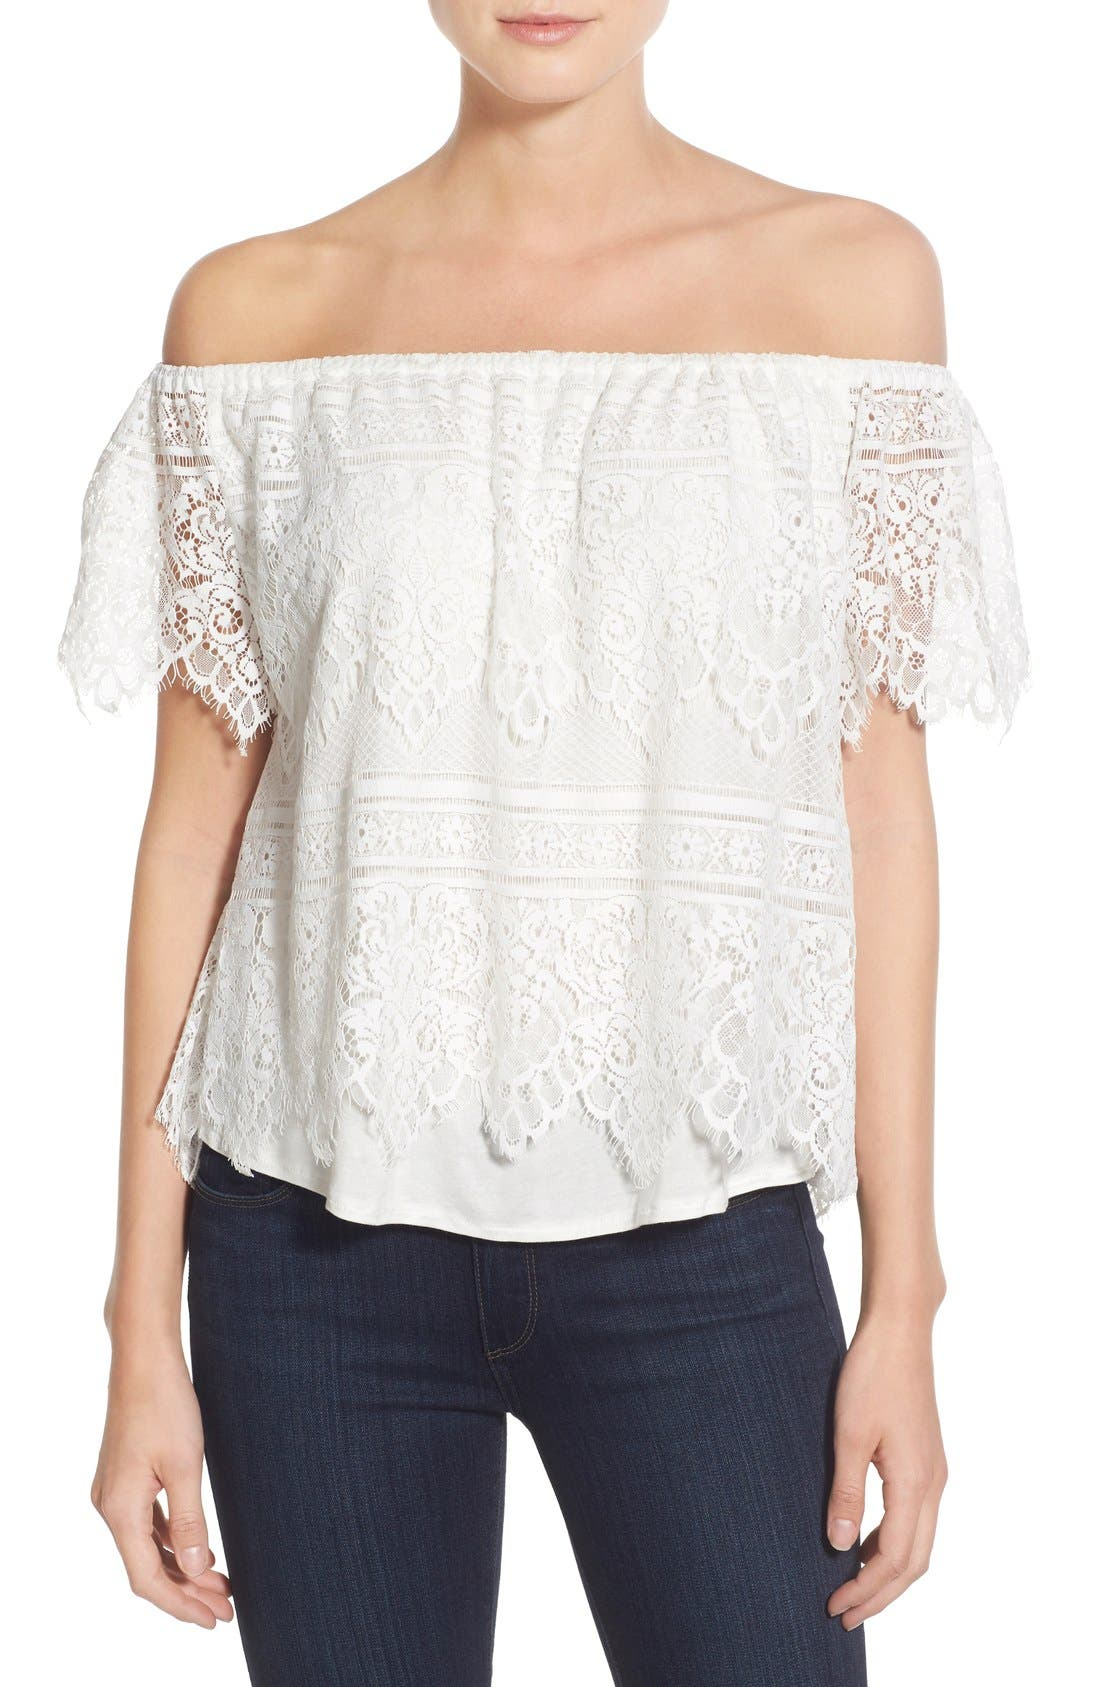 Alternate Image 1 Selected - cupcakes and cashmere 'Sunset Lace' Off the Shoulder Top